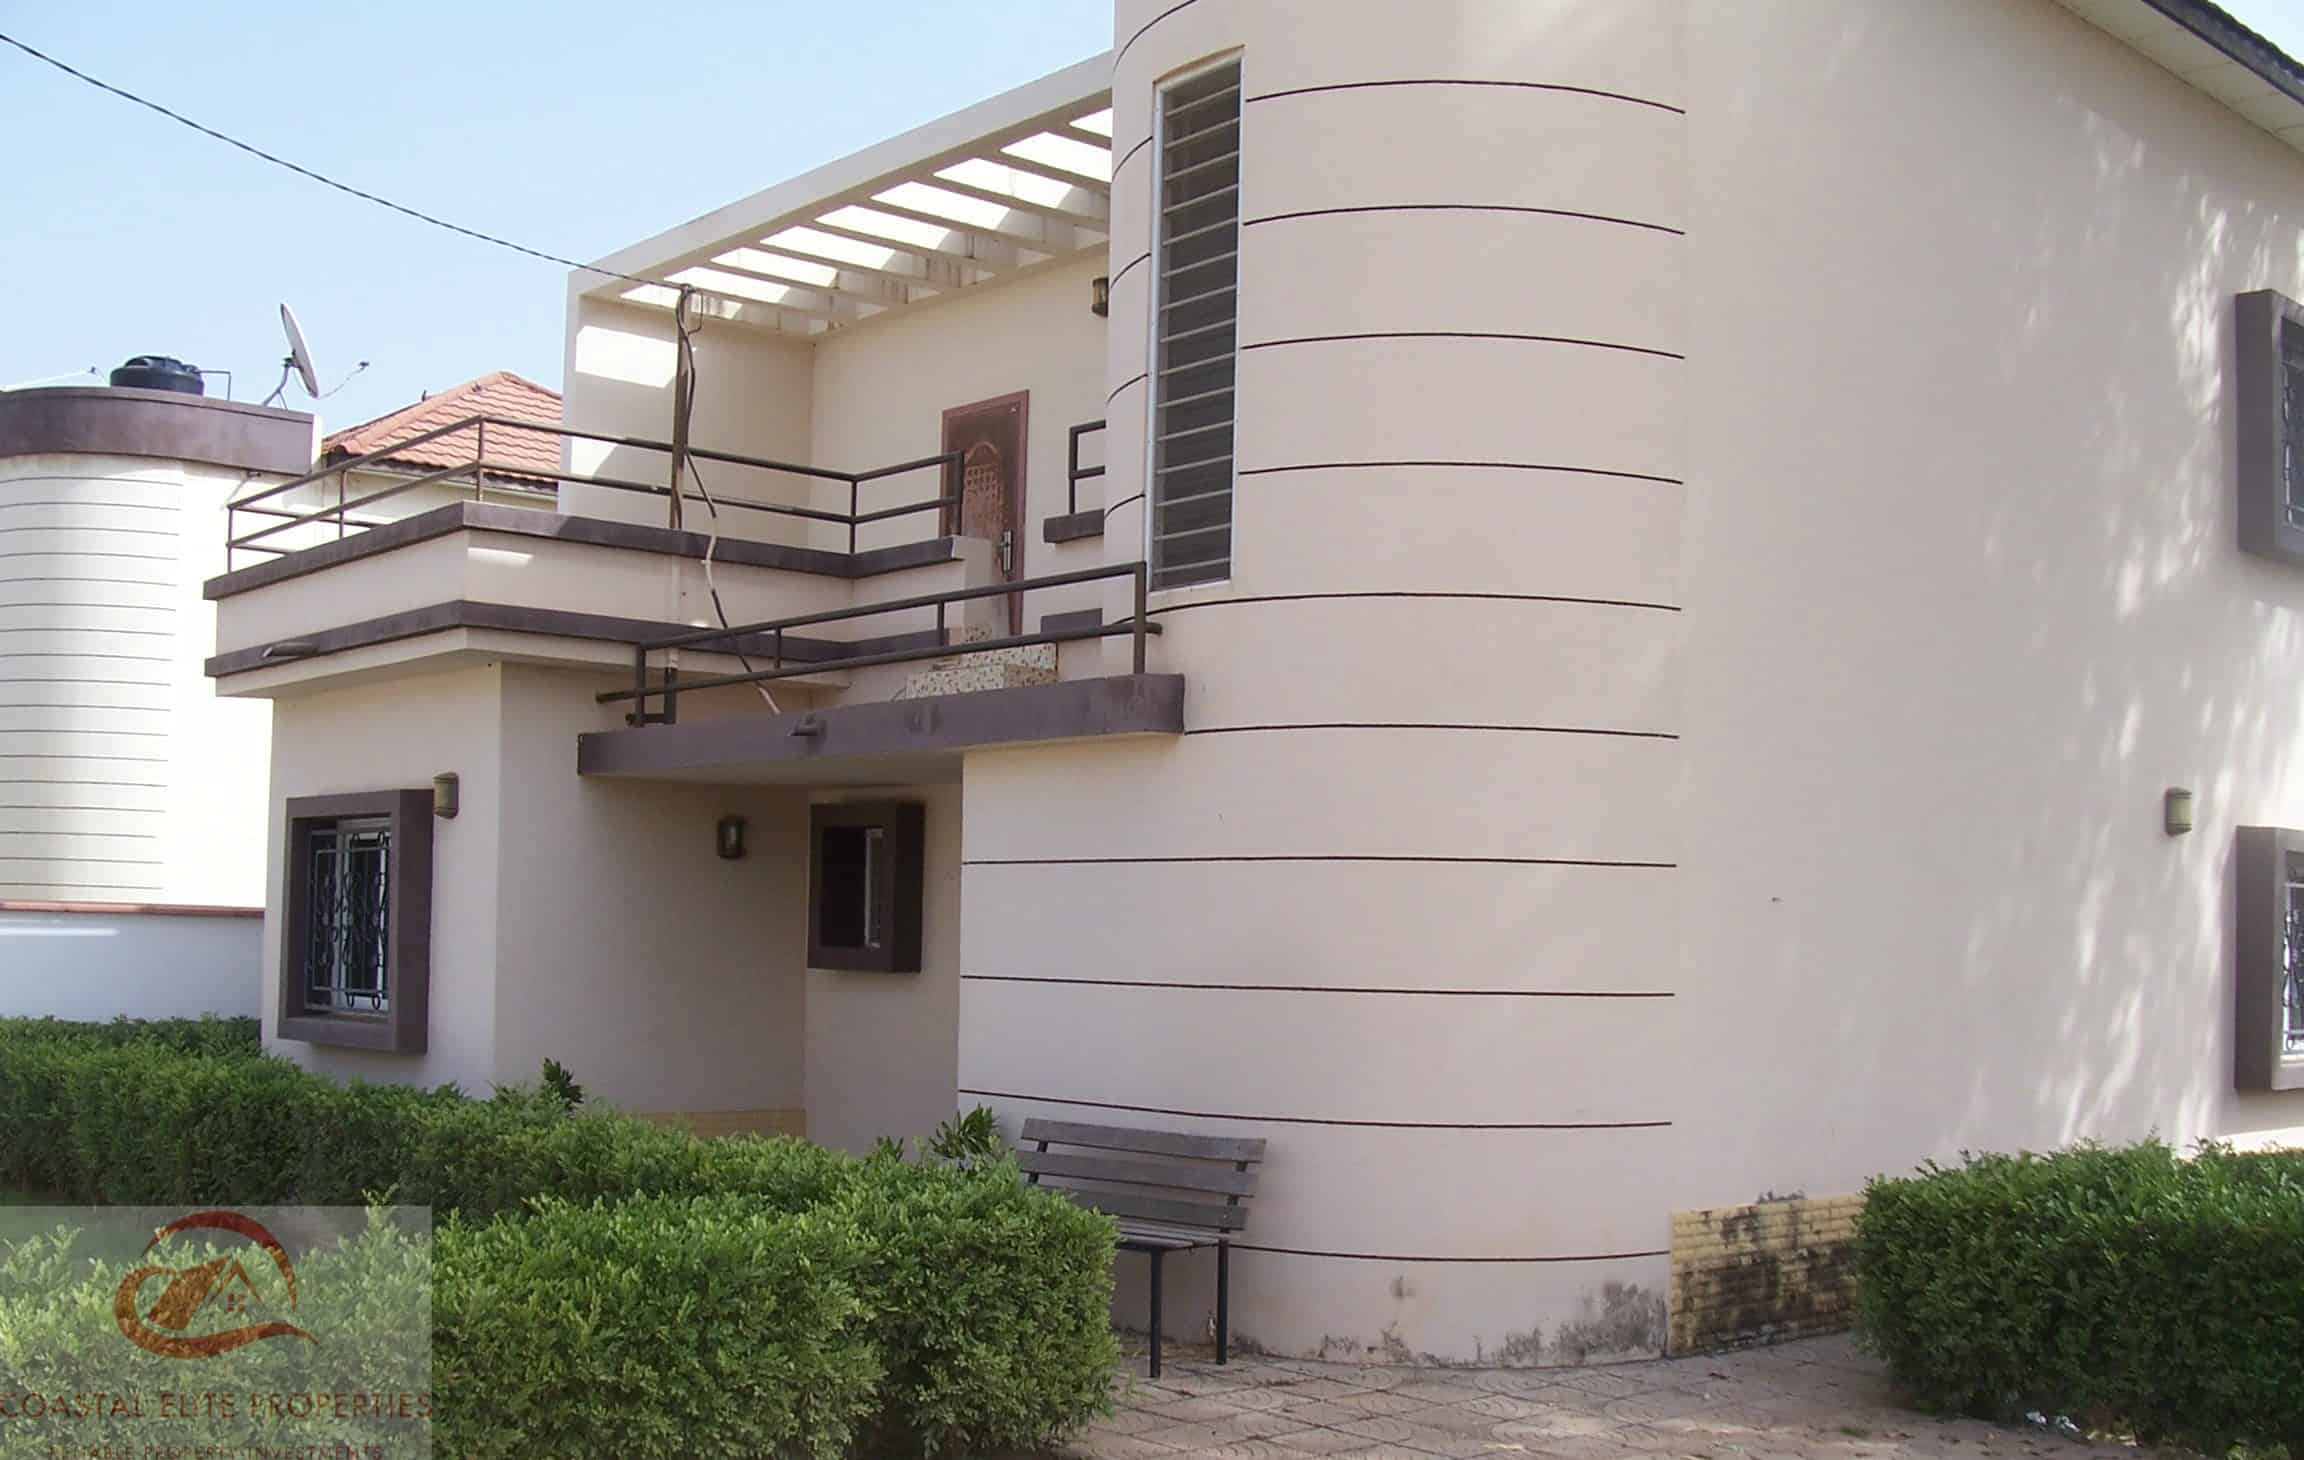 3 Bedroom House For Sale | Salagi